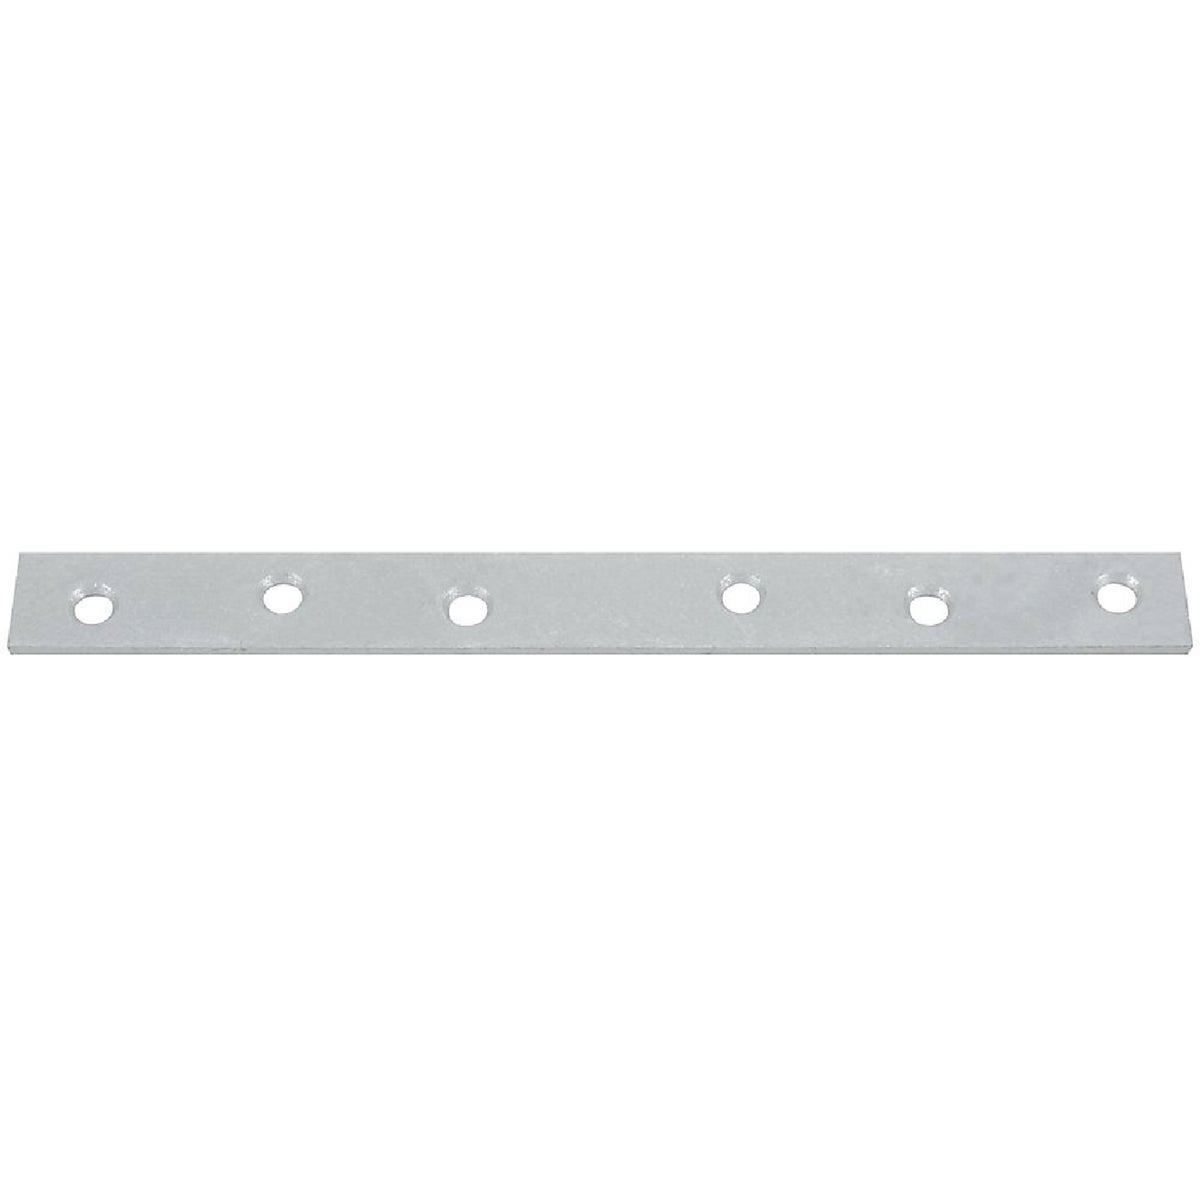 "10"" GALV MENDING BRACE - N220368 by National Mfg Co"